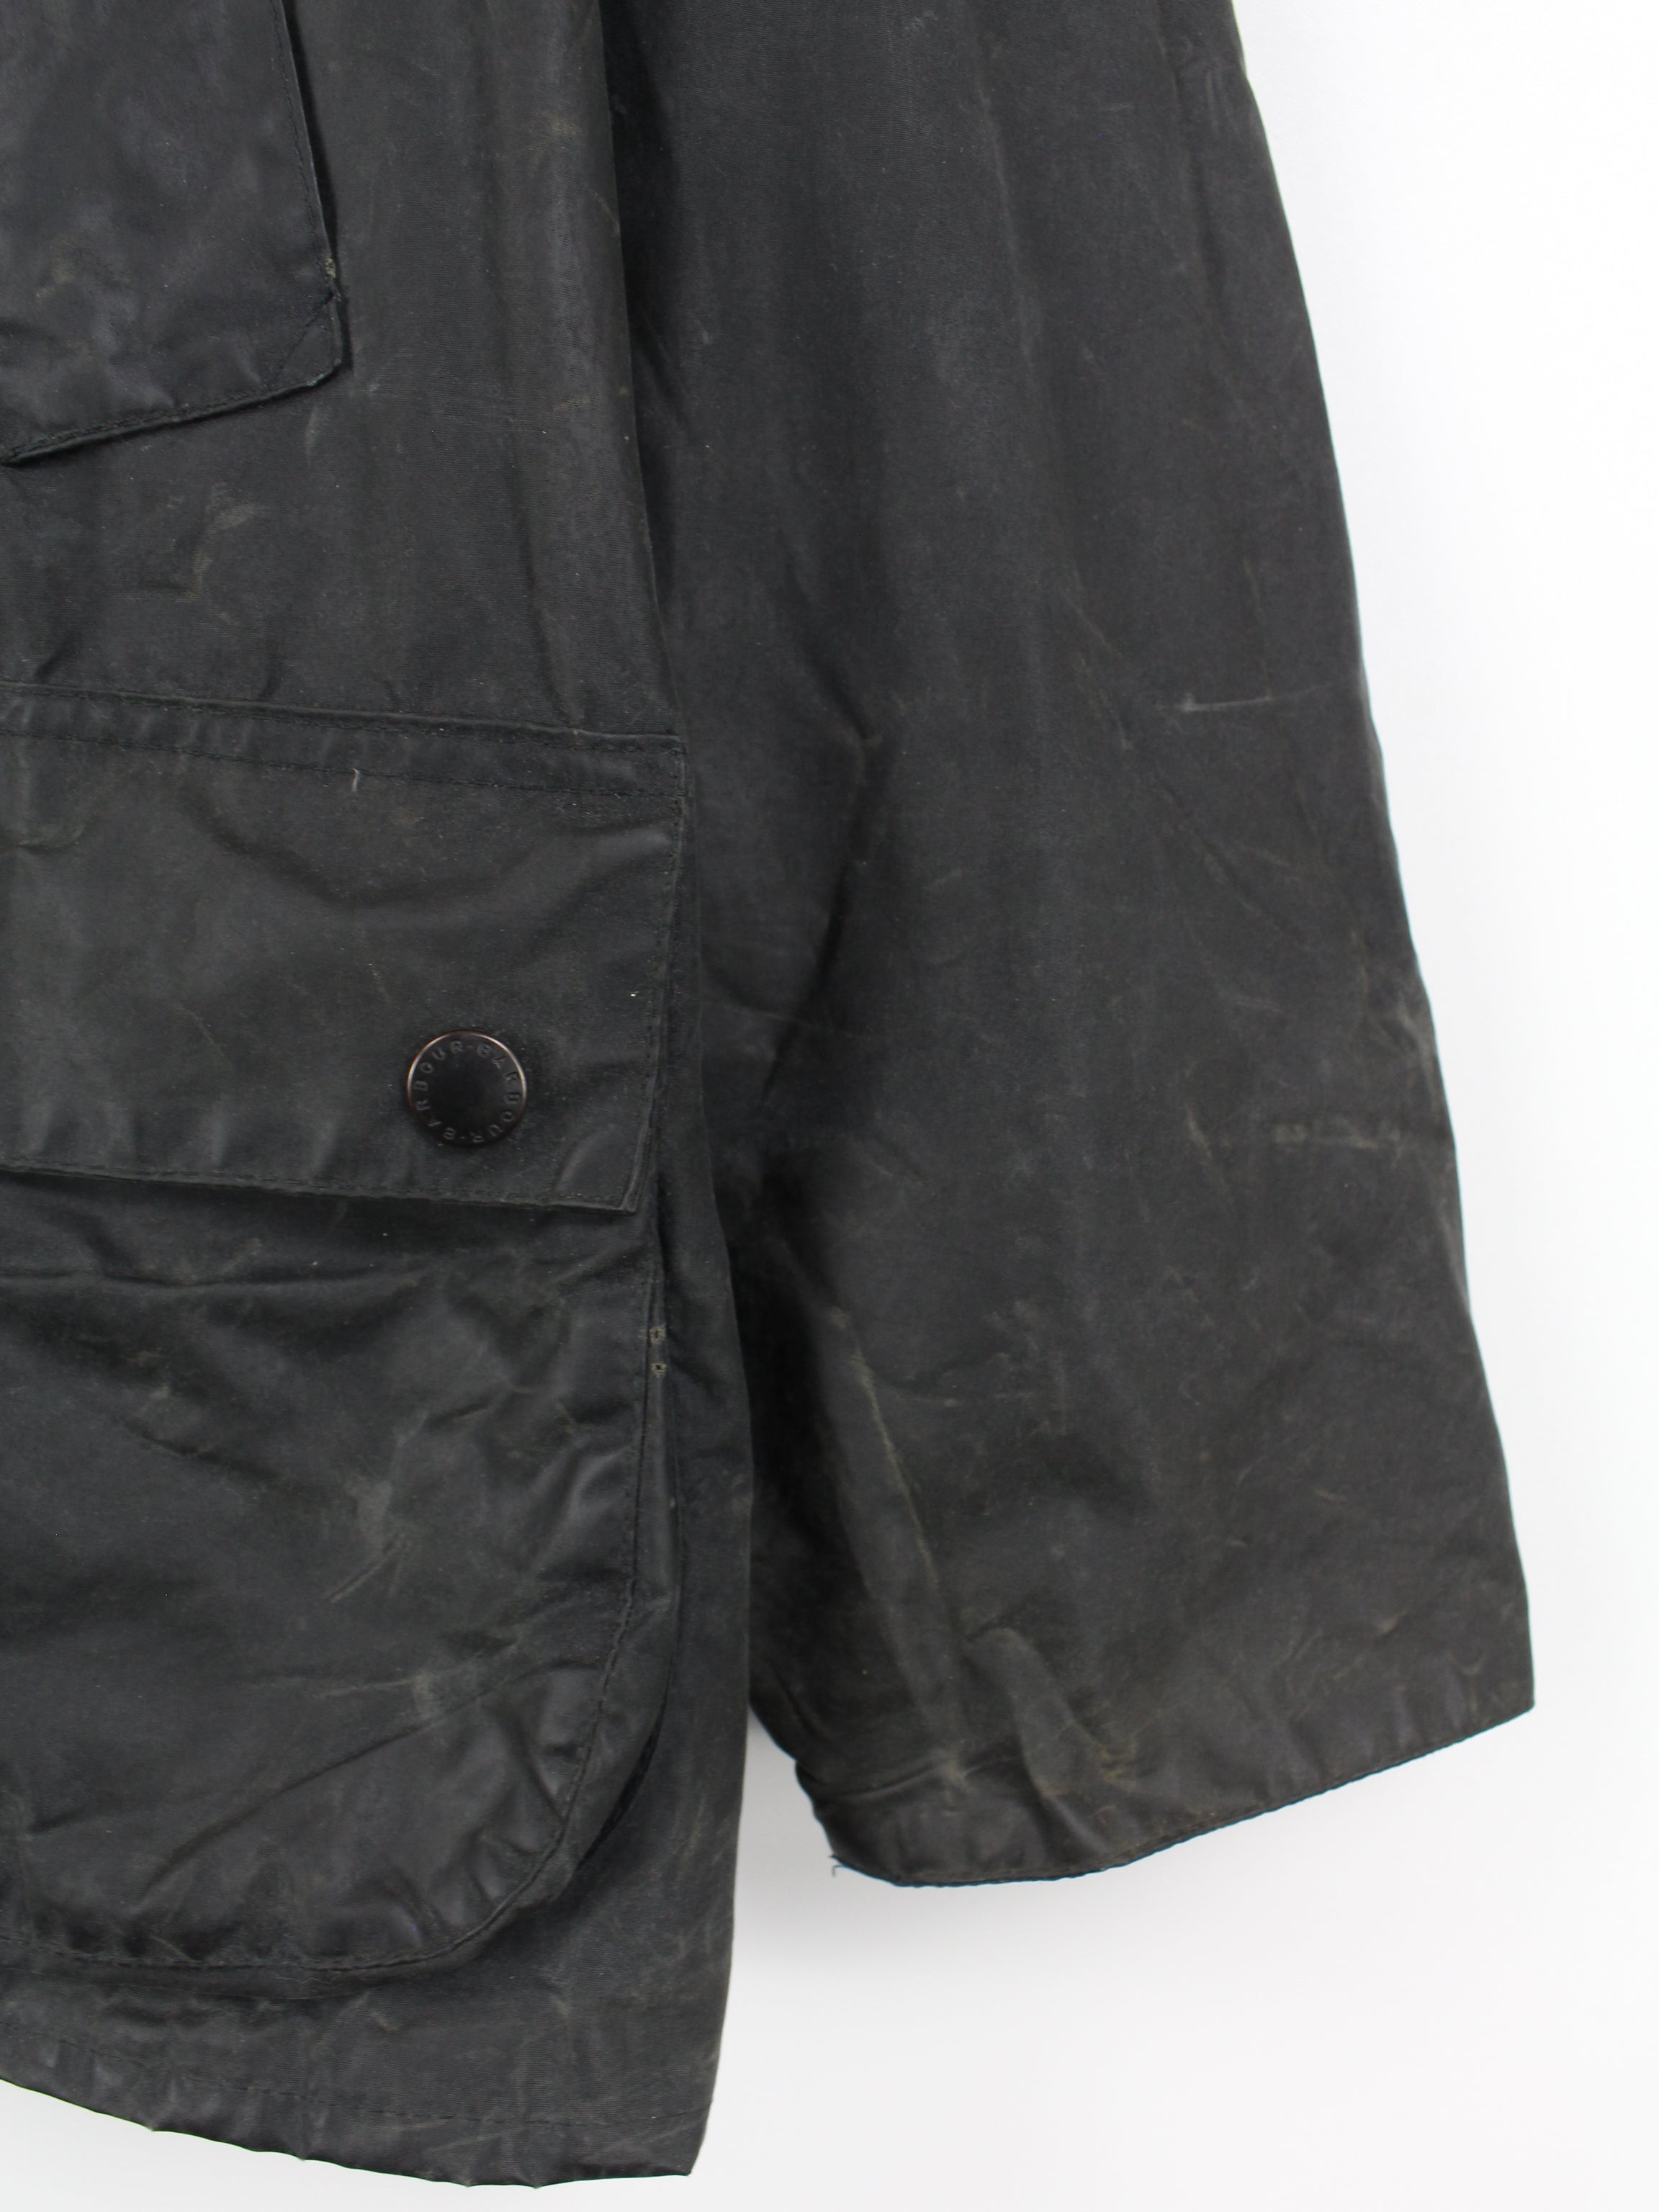 Greenbay Packers Sweater Grau XL